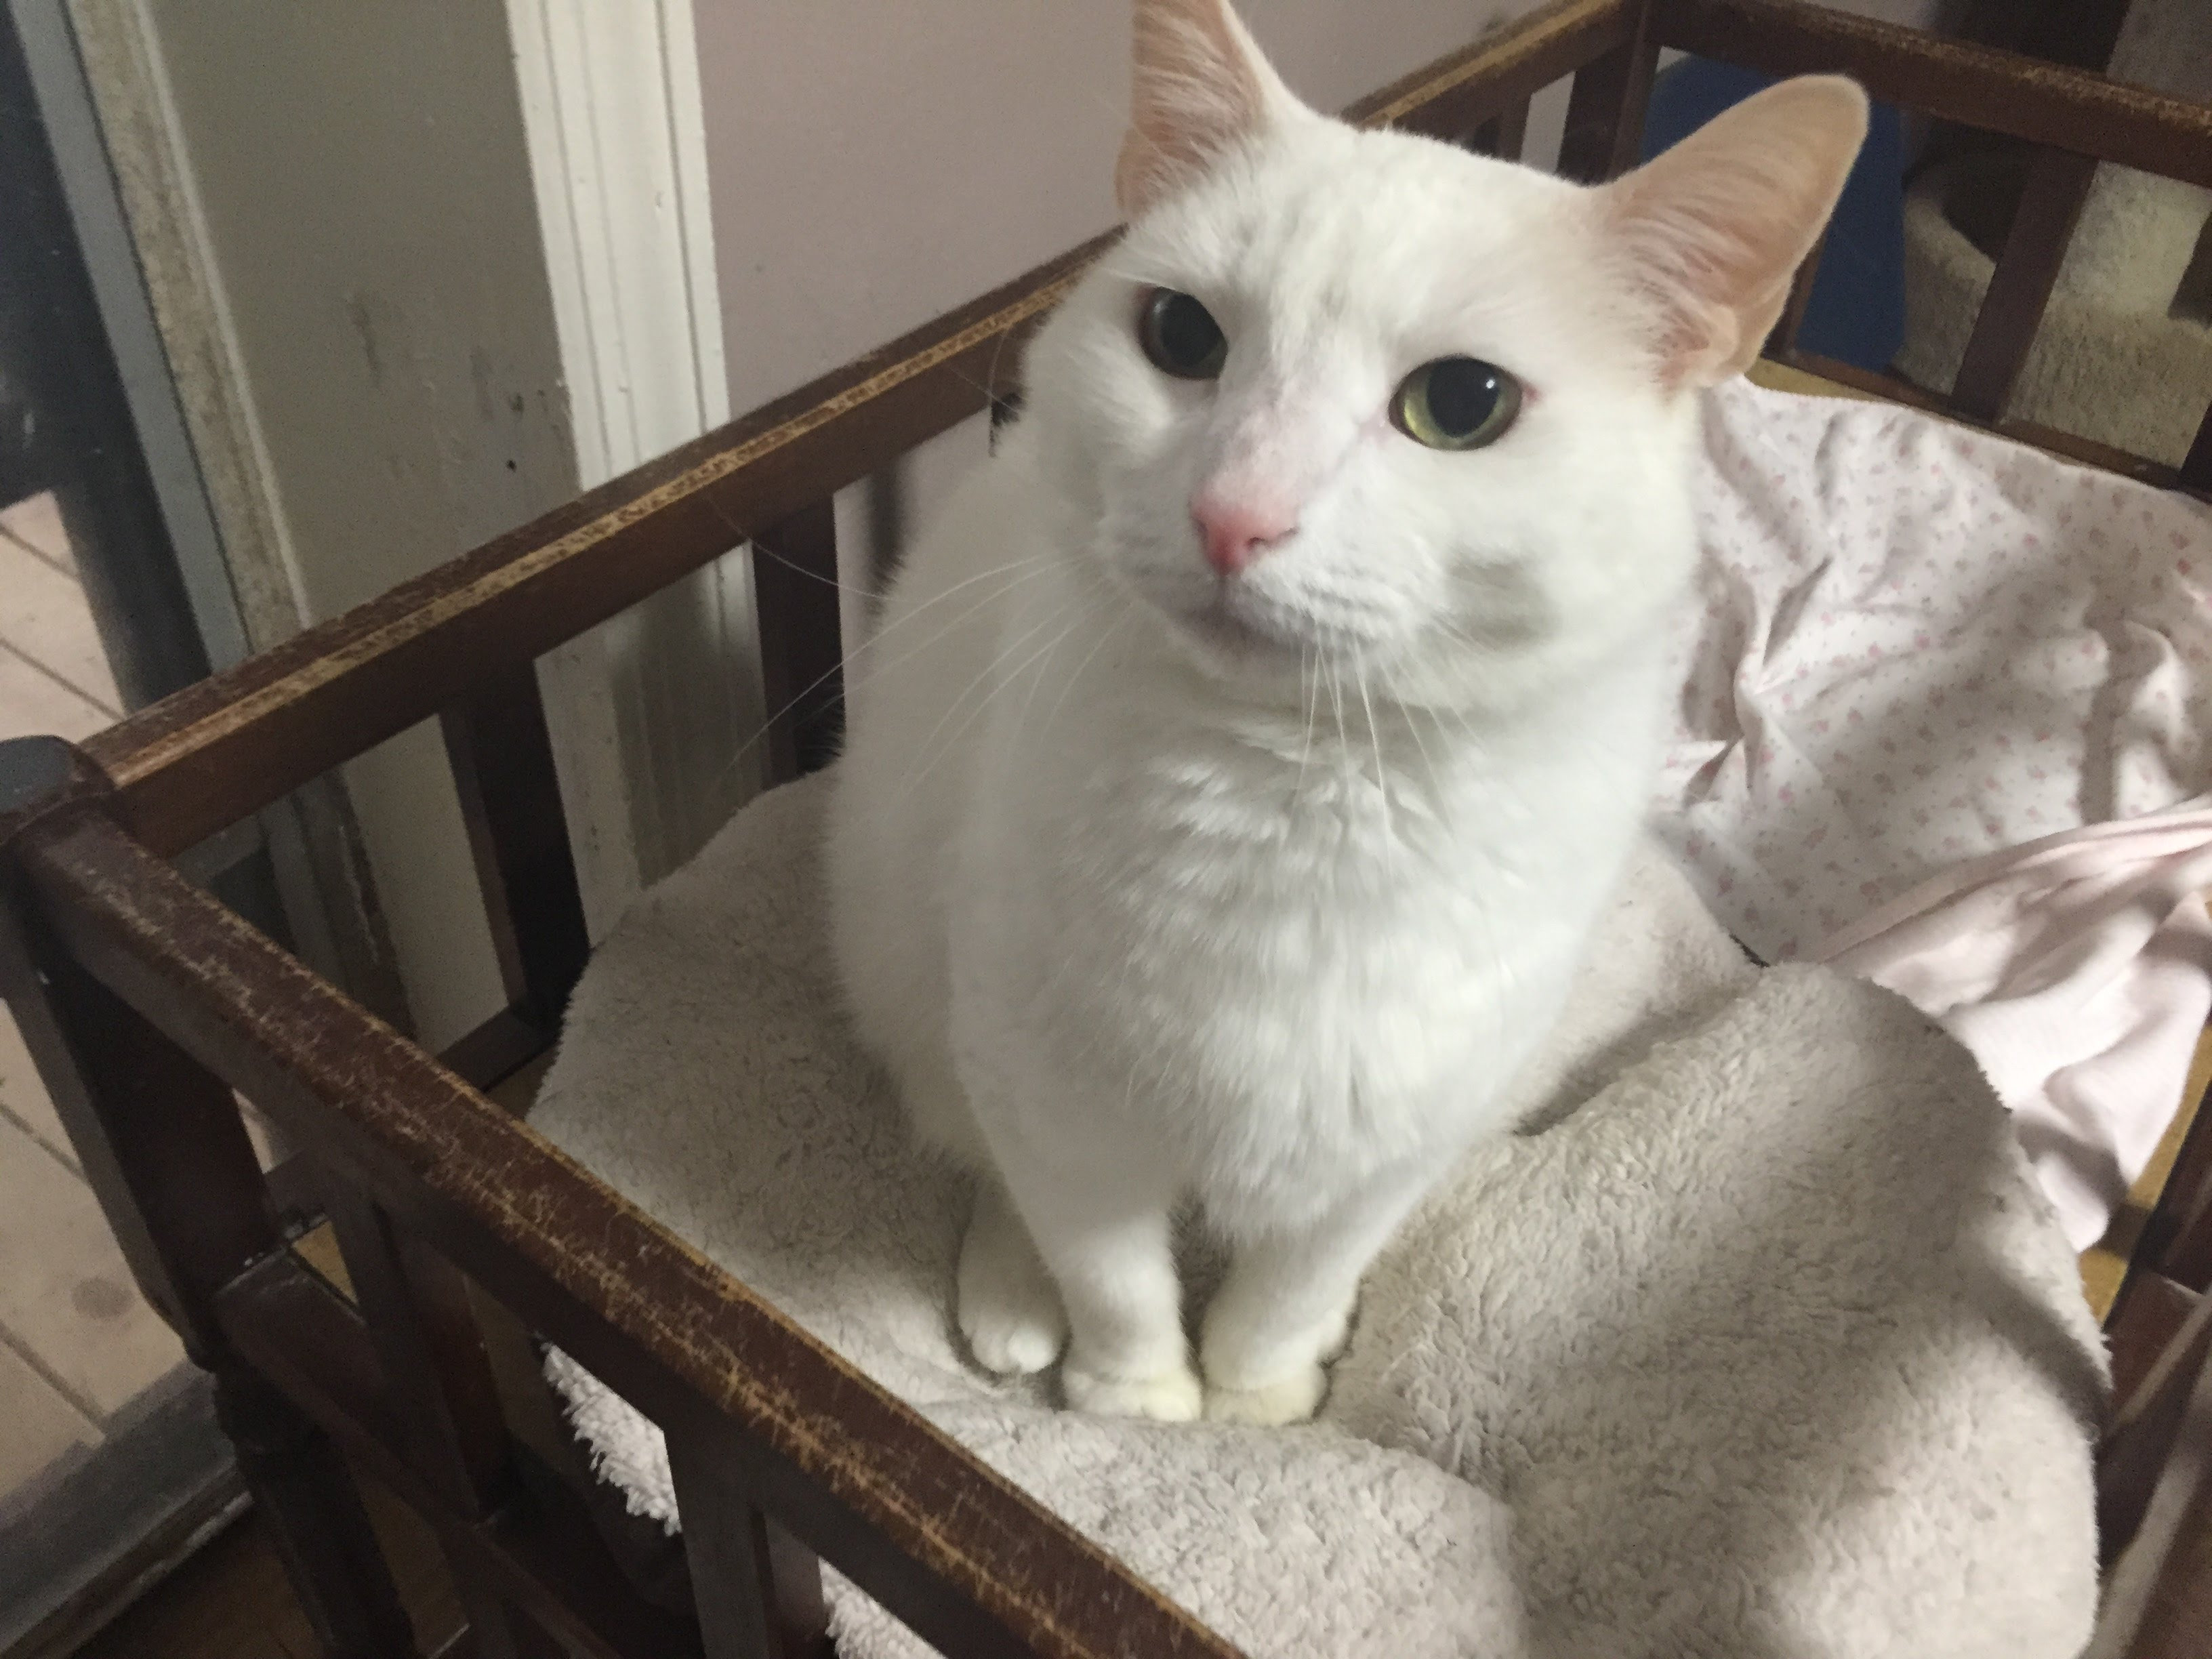 Chatty and Very Friendly White Cat - Pet of the Week - YouTube